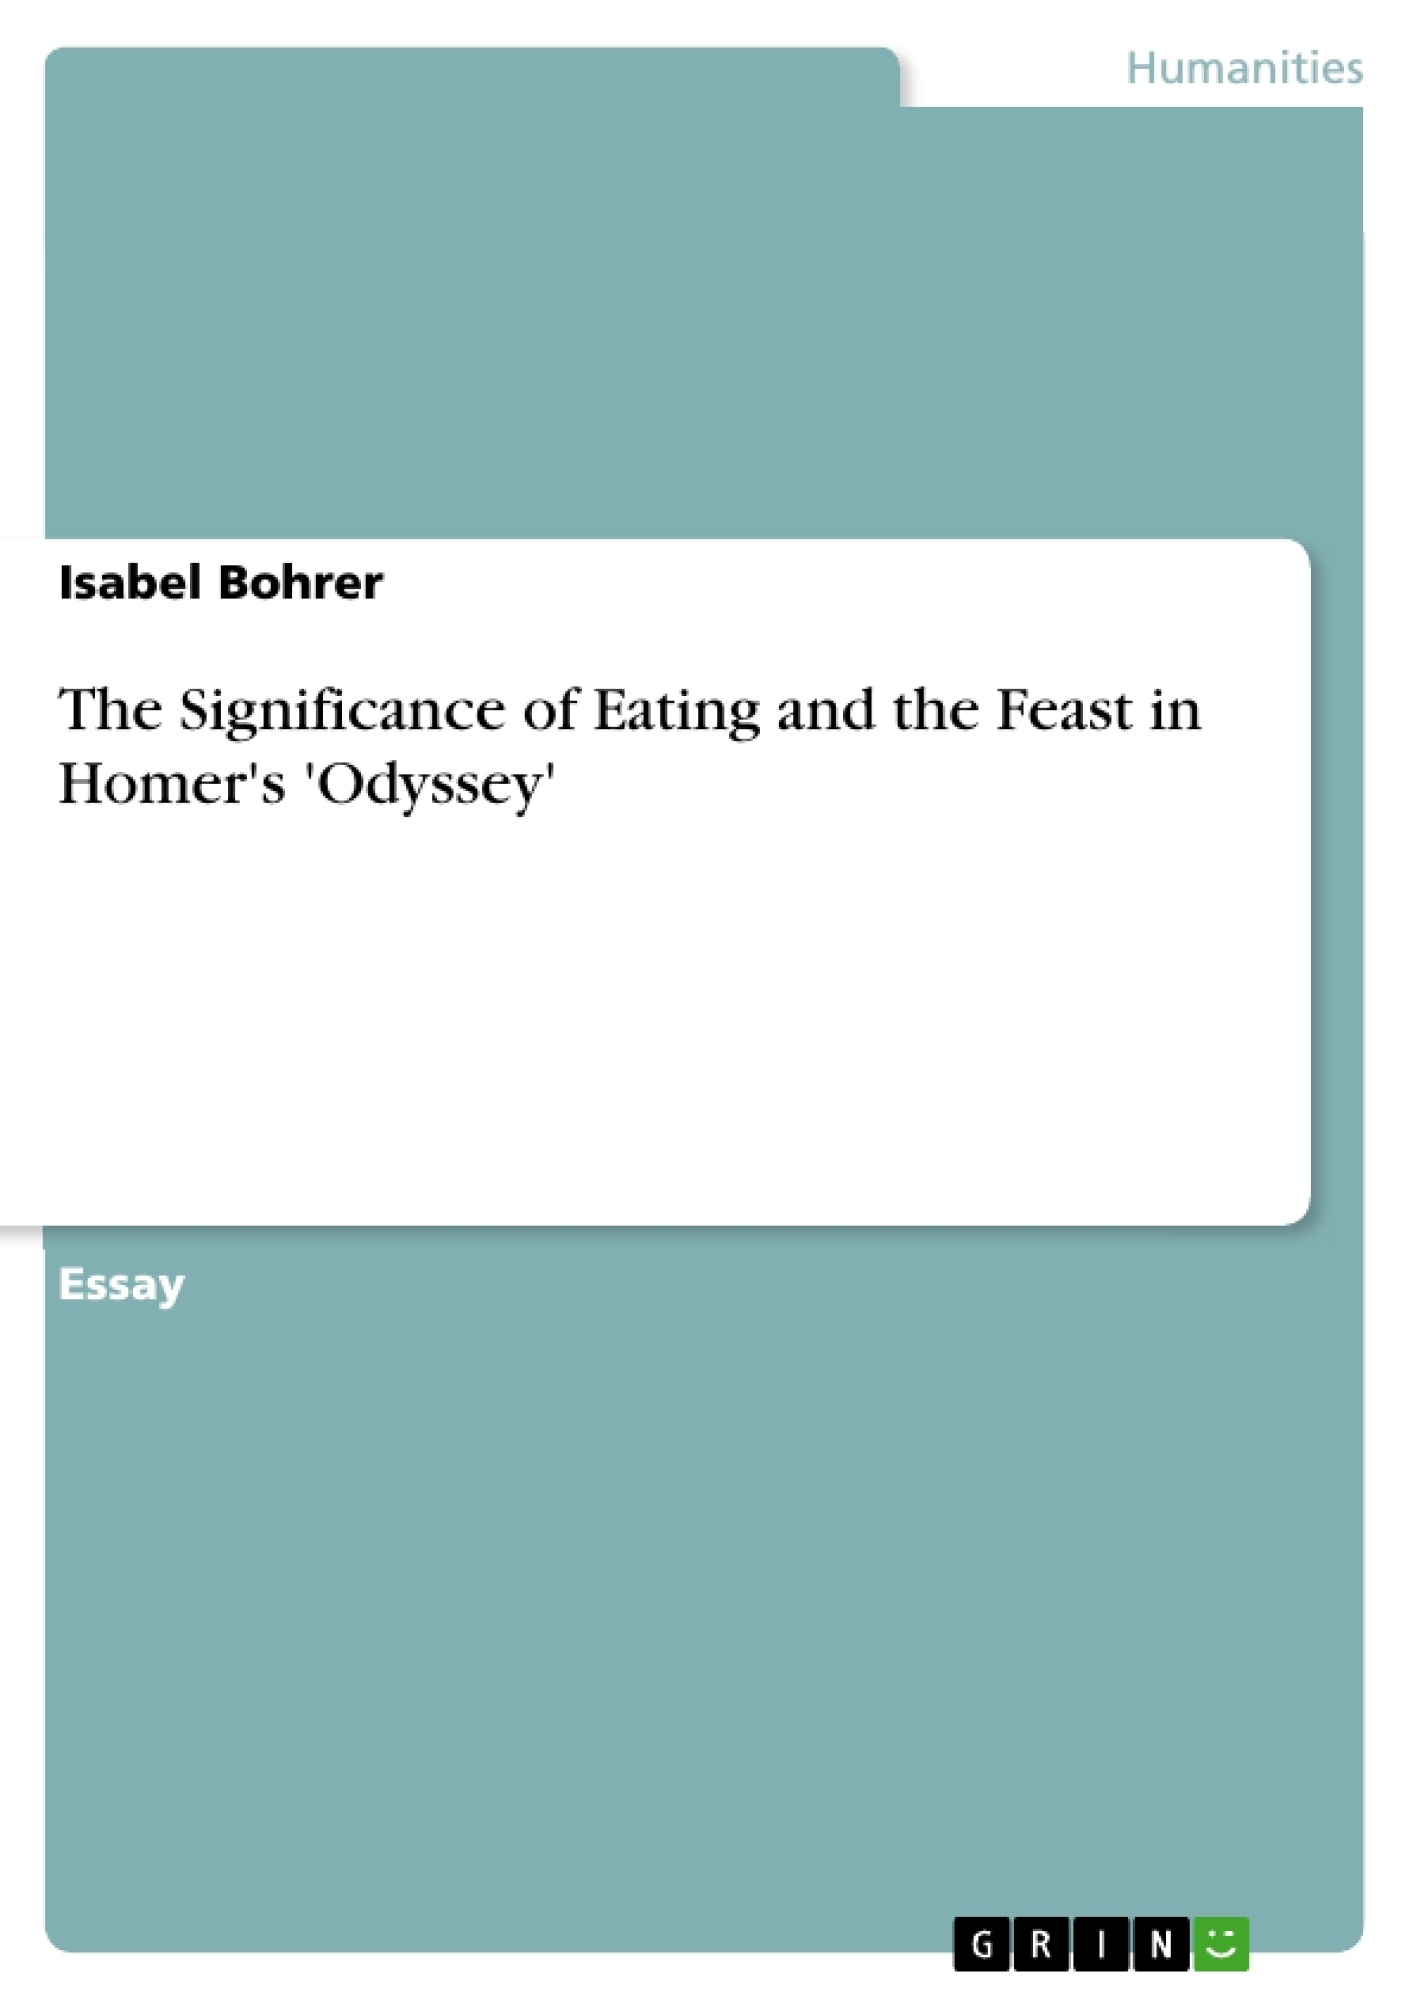 Title: The Significance of Eating and the Feast in Homer's 'Odyssey'